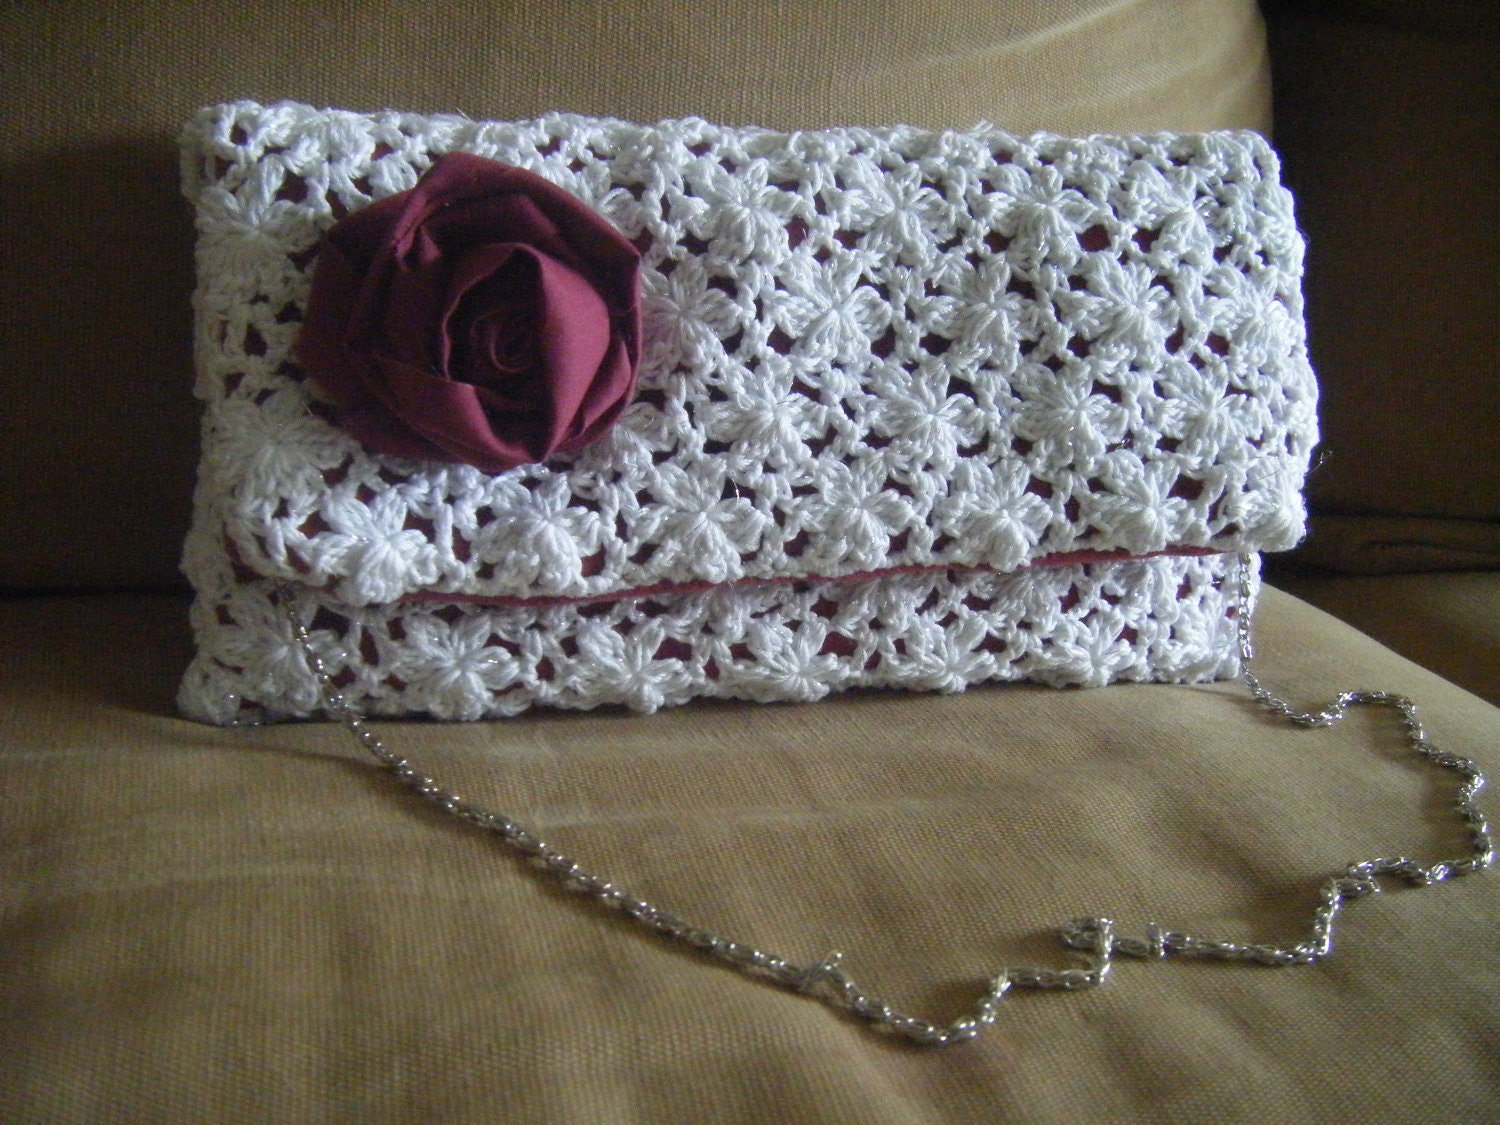 Crochet Clutch Lace Pattern : Clutch Lace Envelope Oversize Purse Crochet Pattern by NatalieSpot